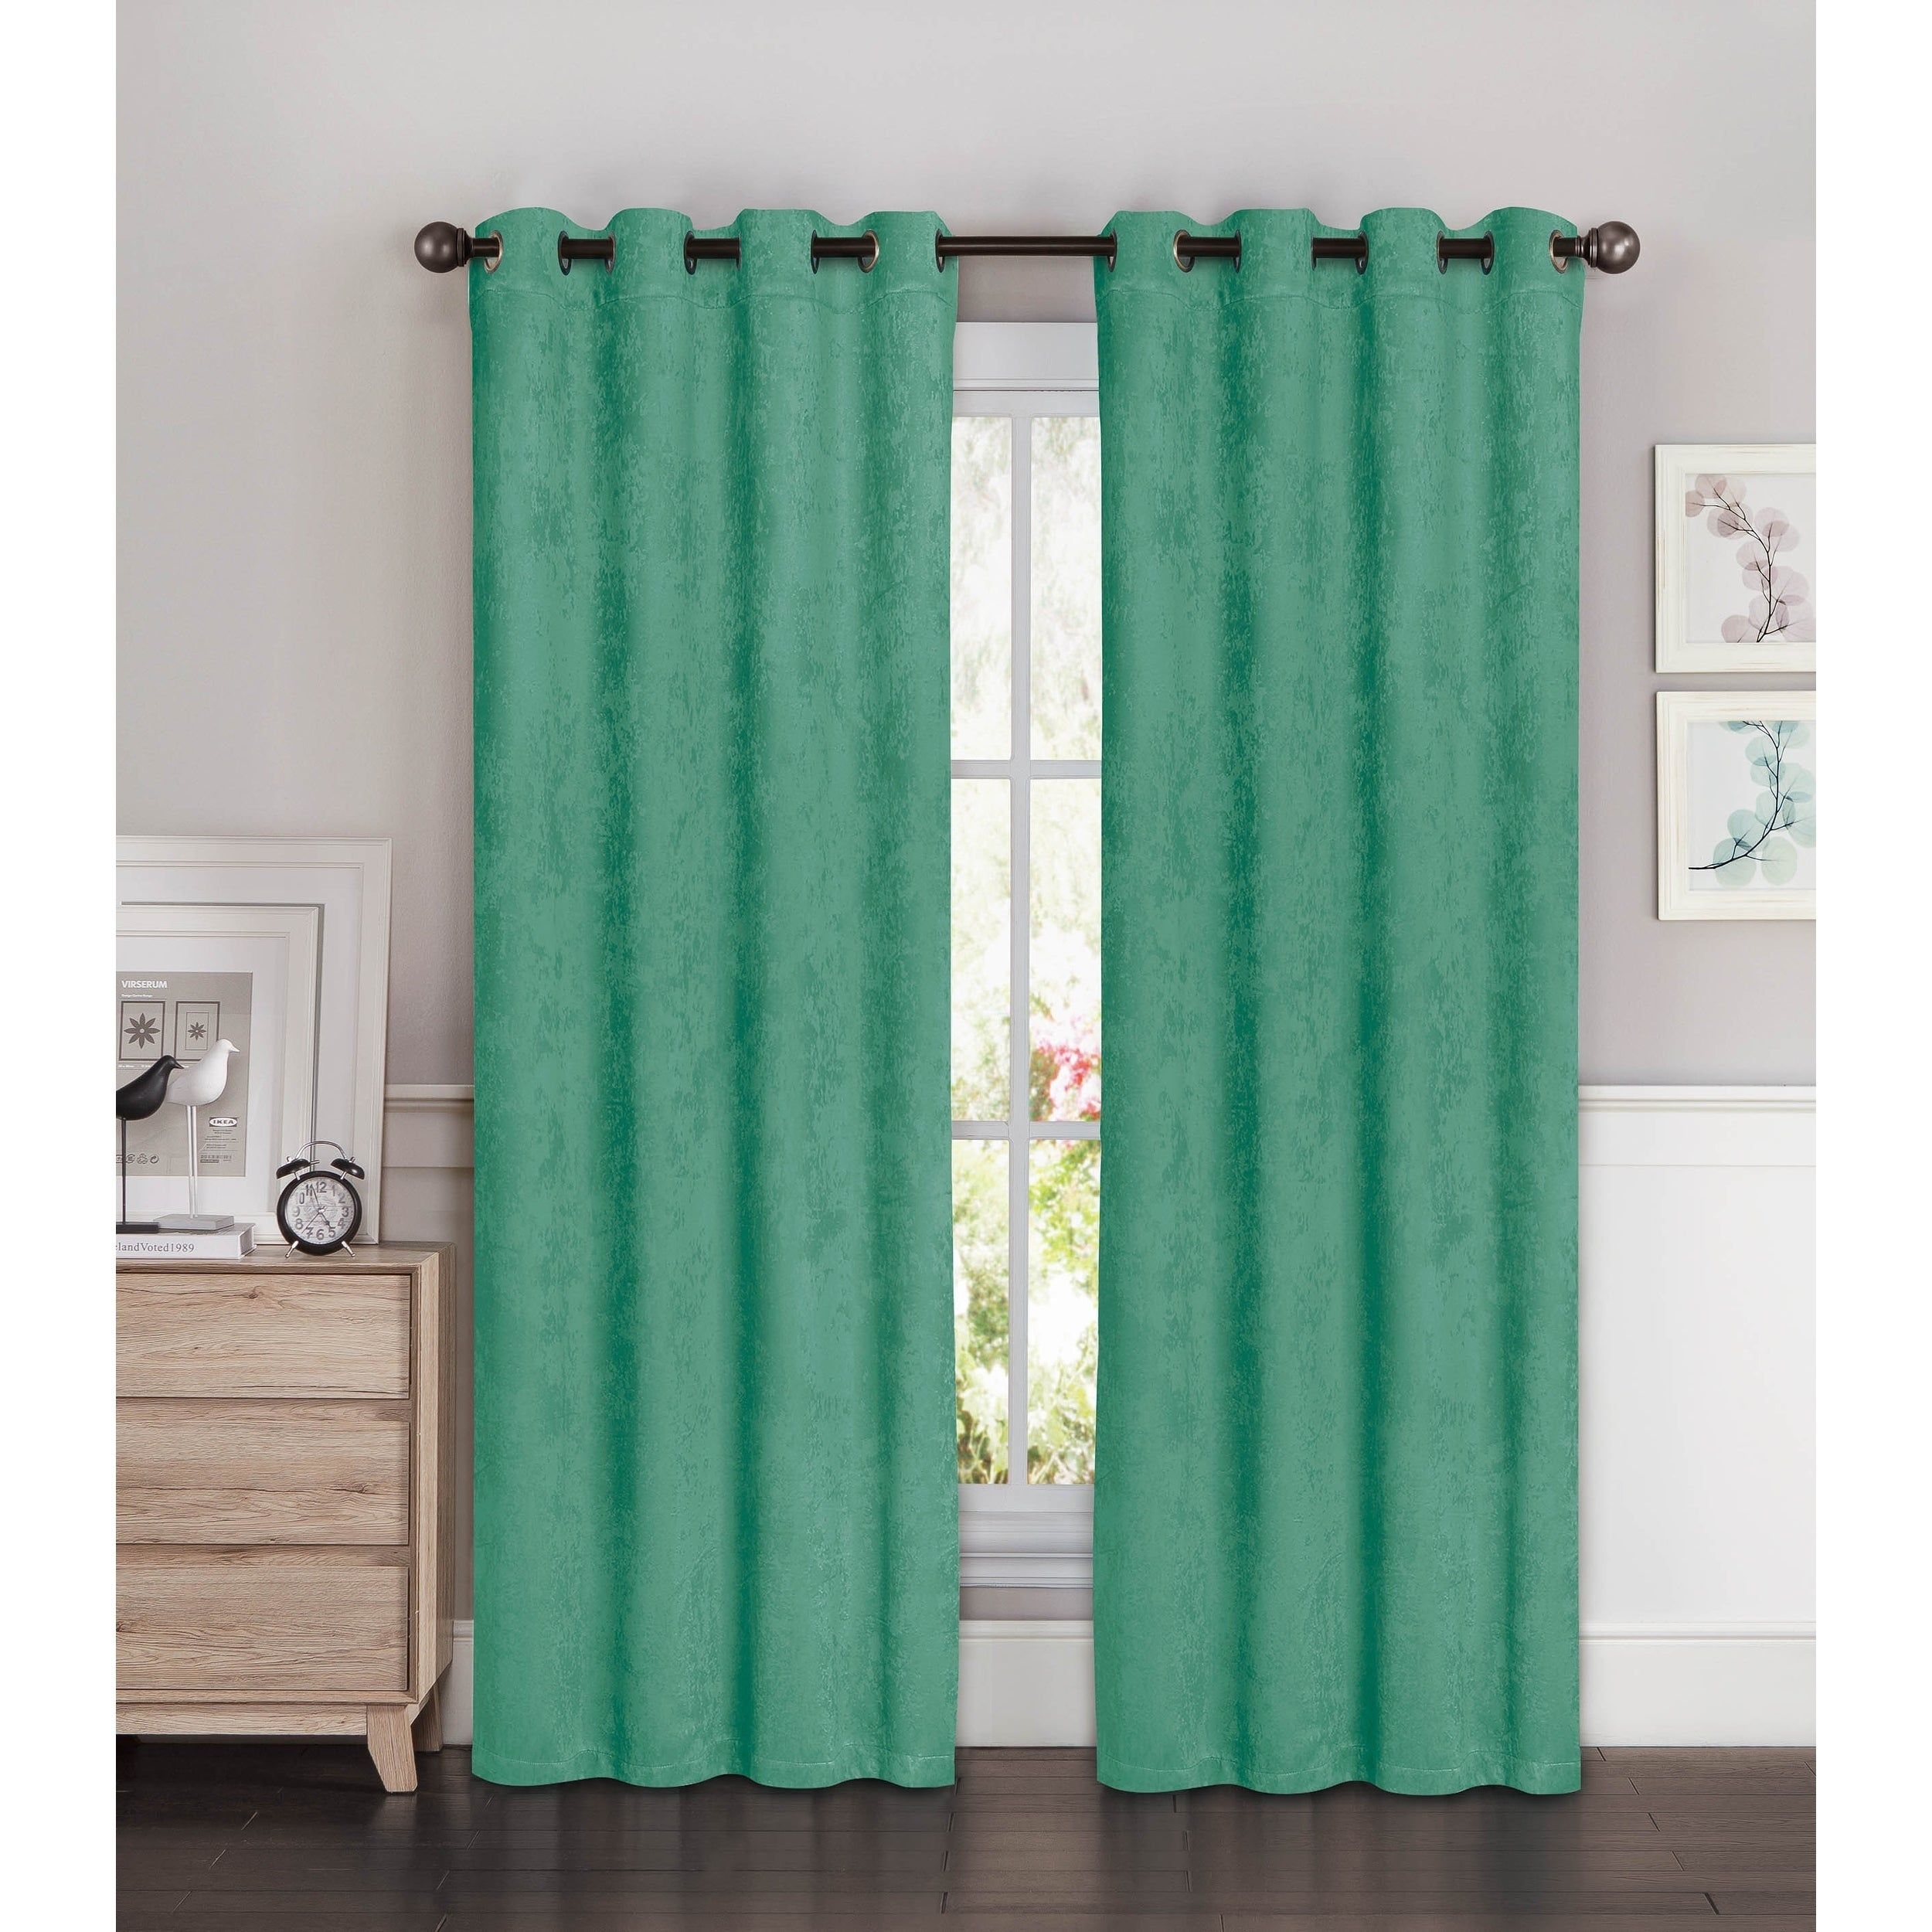 Luxury 96 Inch Grommet Curtain Panels – Zachary Kristen With Sugar Creek Grommet Top Loha Linen Window Curtain Panel Pairs (View 20 of 30)